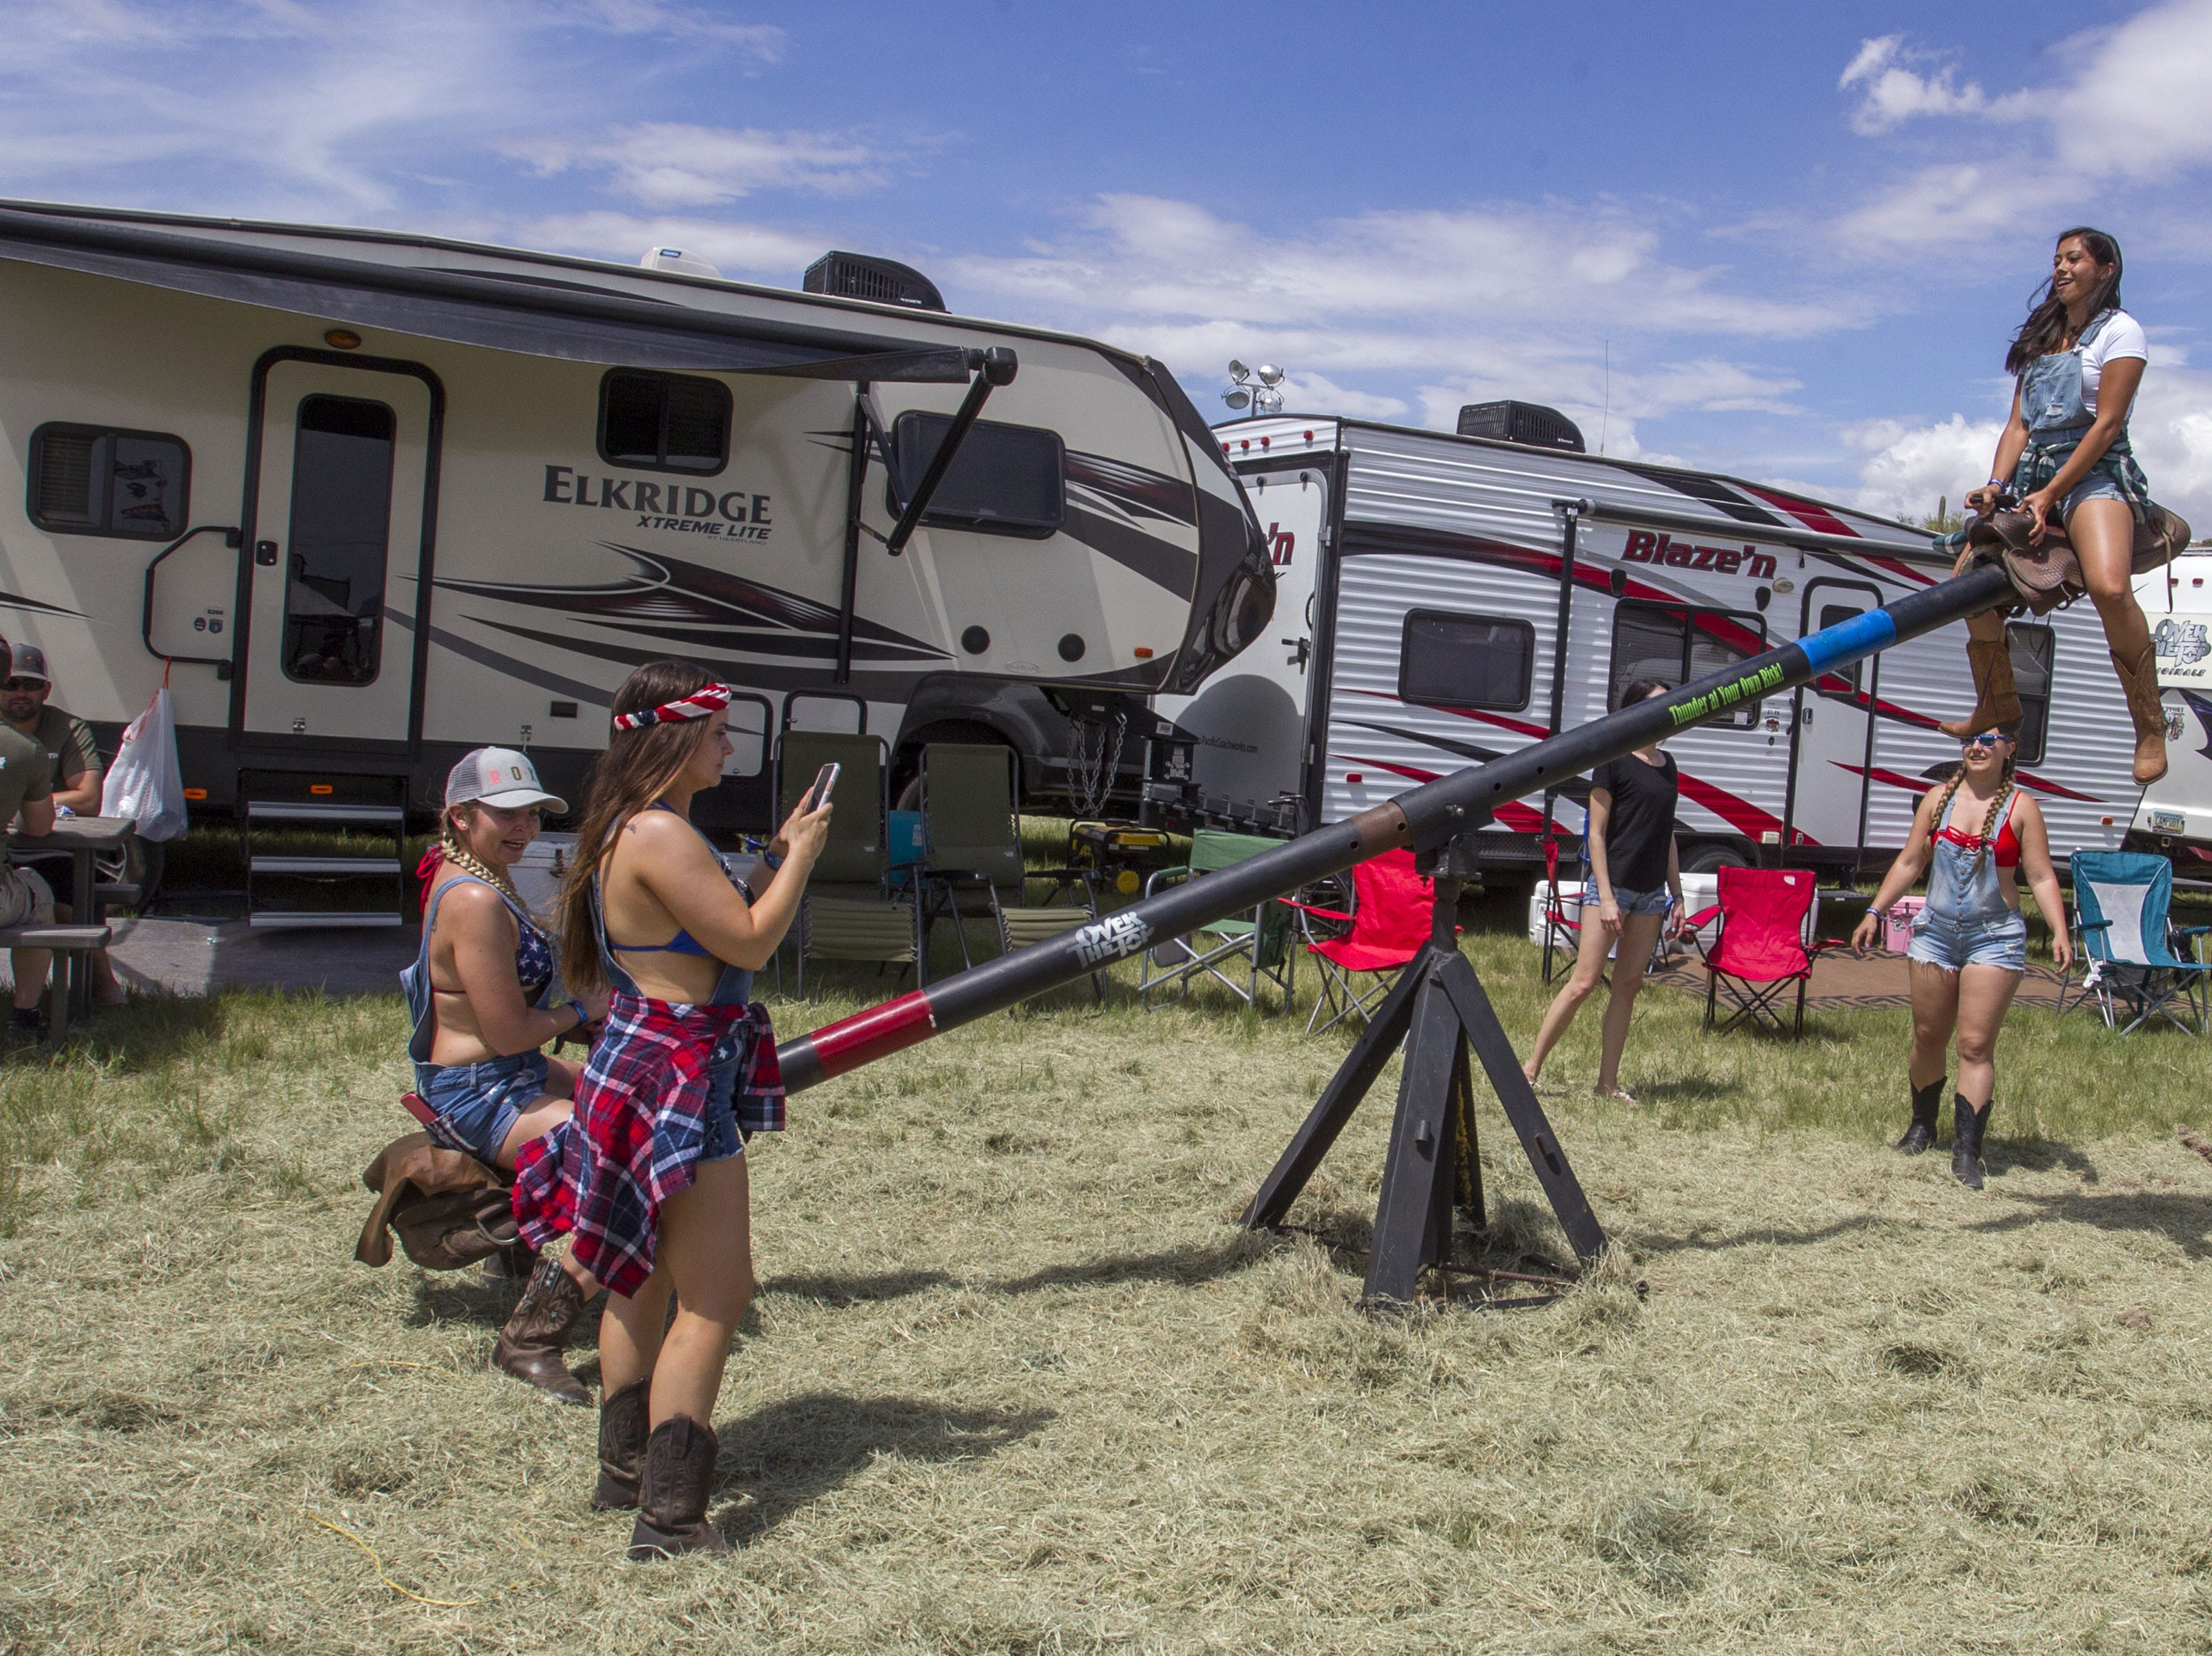 Laura Blackwell (left) and Paulette Mordini do teeter totter at I Love this Camp at Country Thunder Arizona Friday, April 12, 2019, in Florence, Arizona.